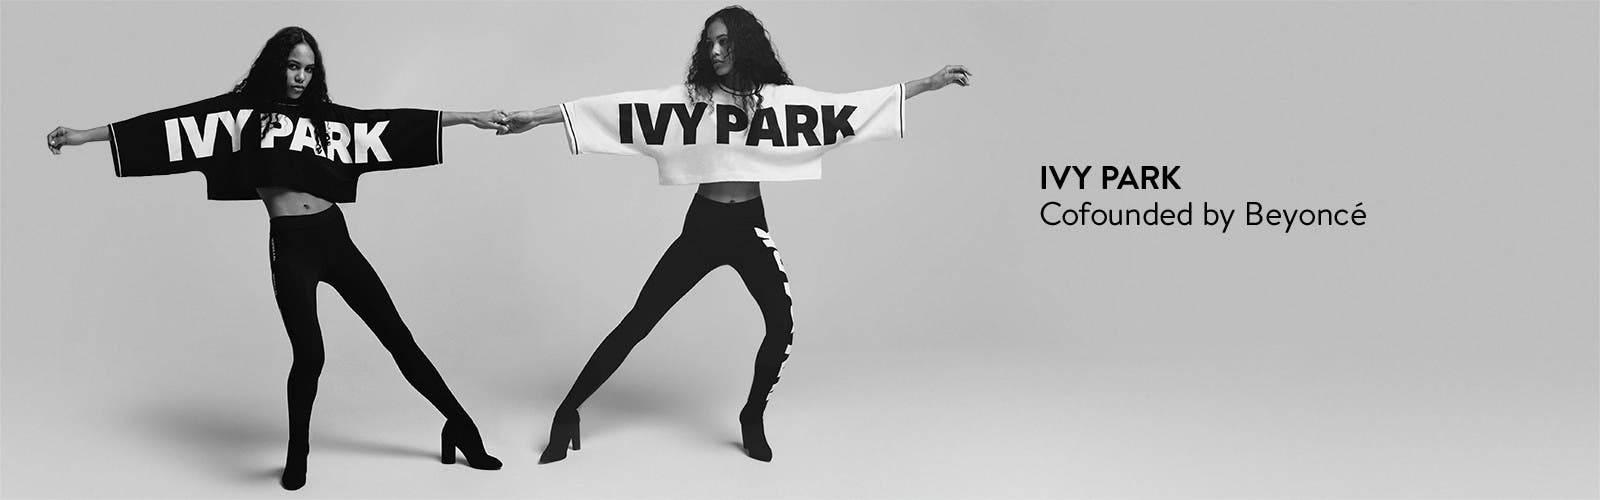 IVY Park, cofounded by Beyoncé.